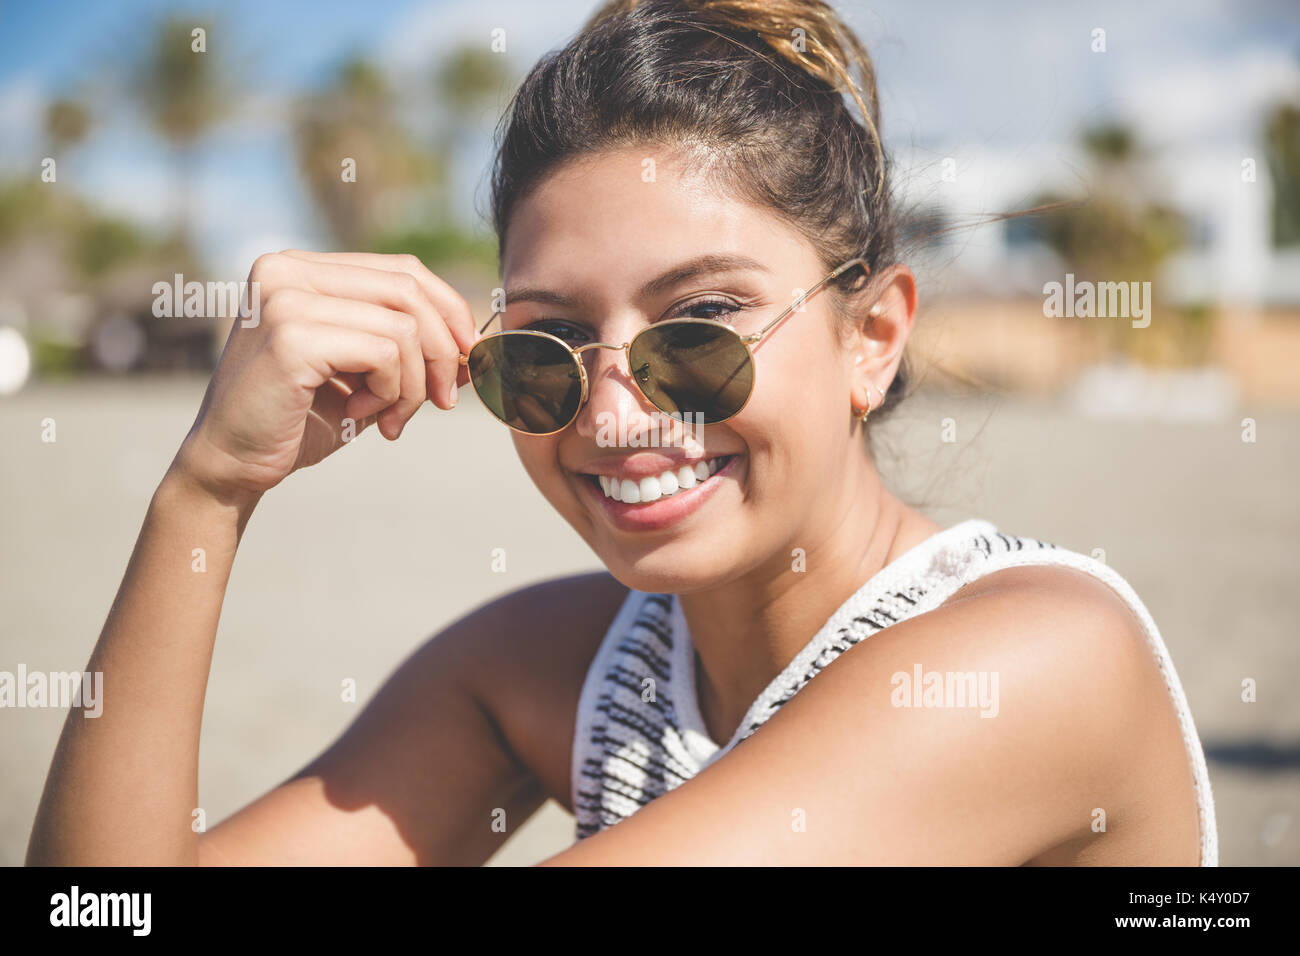 Close up portrait of young pretty woman holding sunglasses smiling - Stock Image